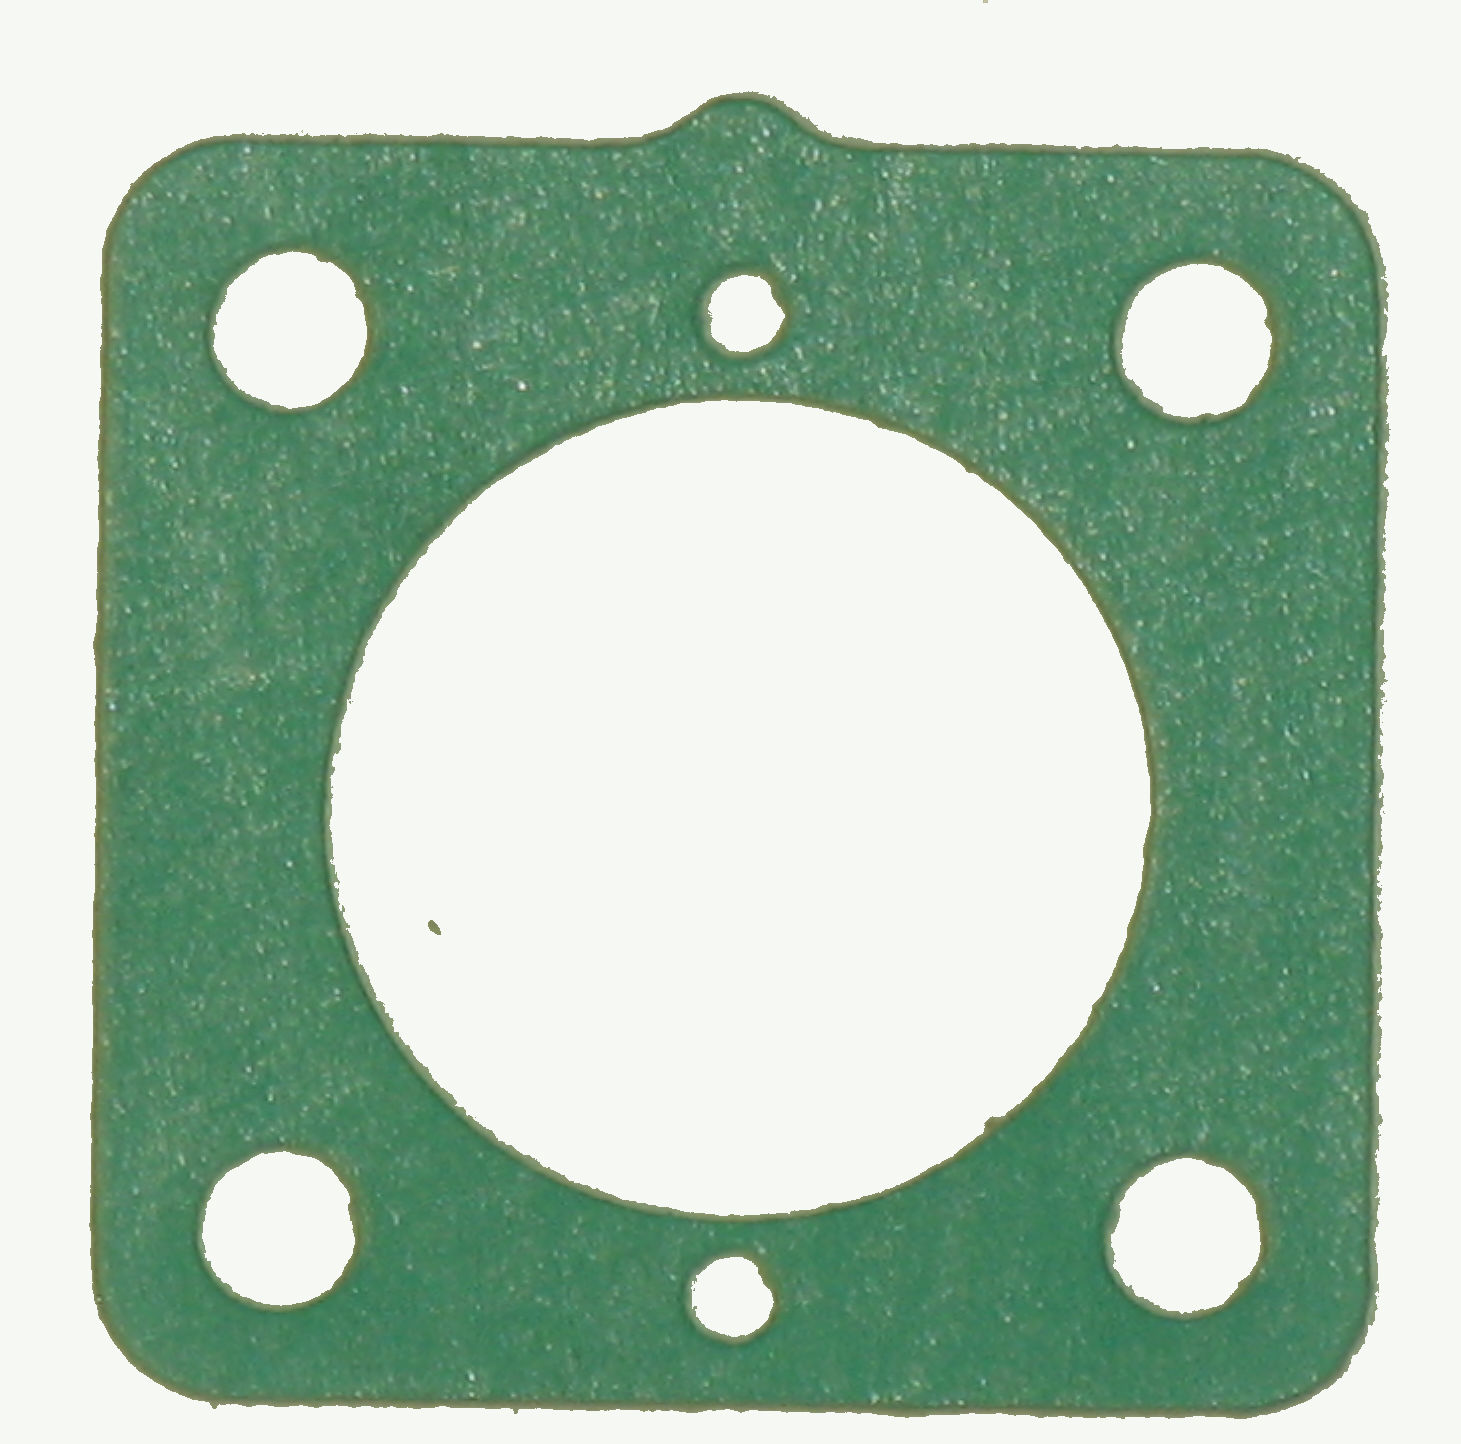 GKT-6382 Gasket; R/N GKT-918 (Made in the USA)